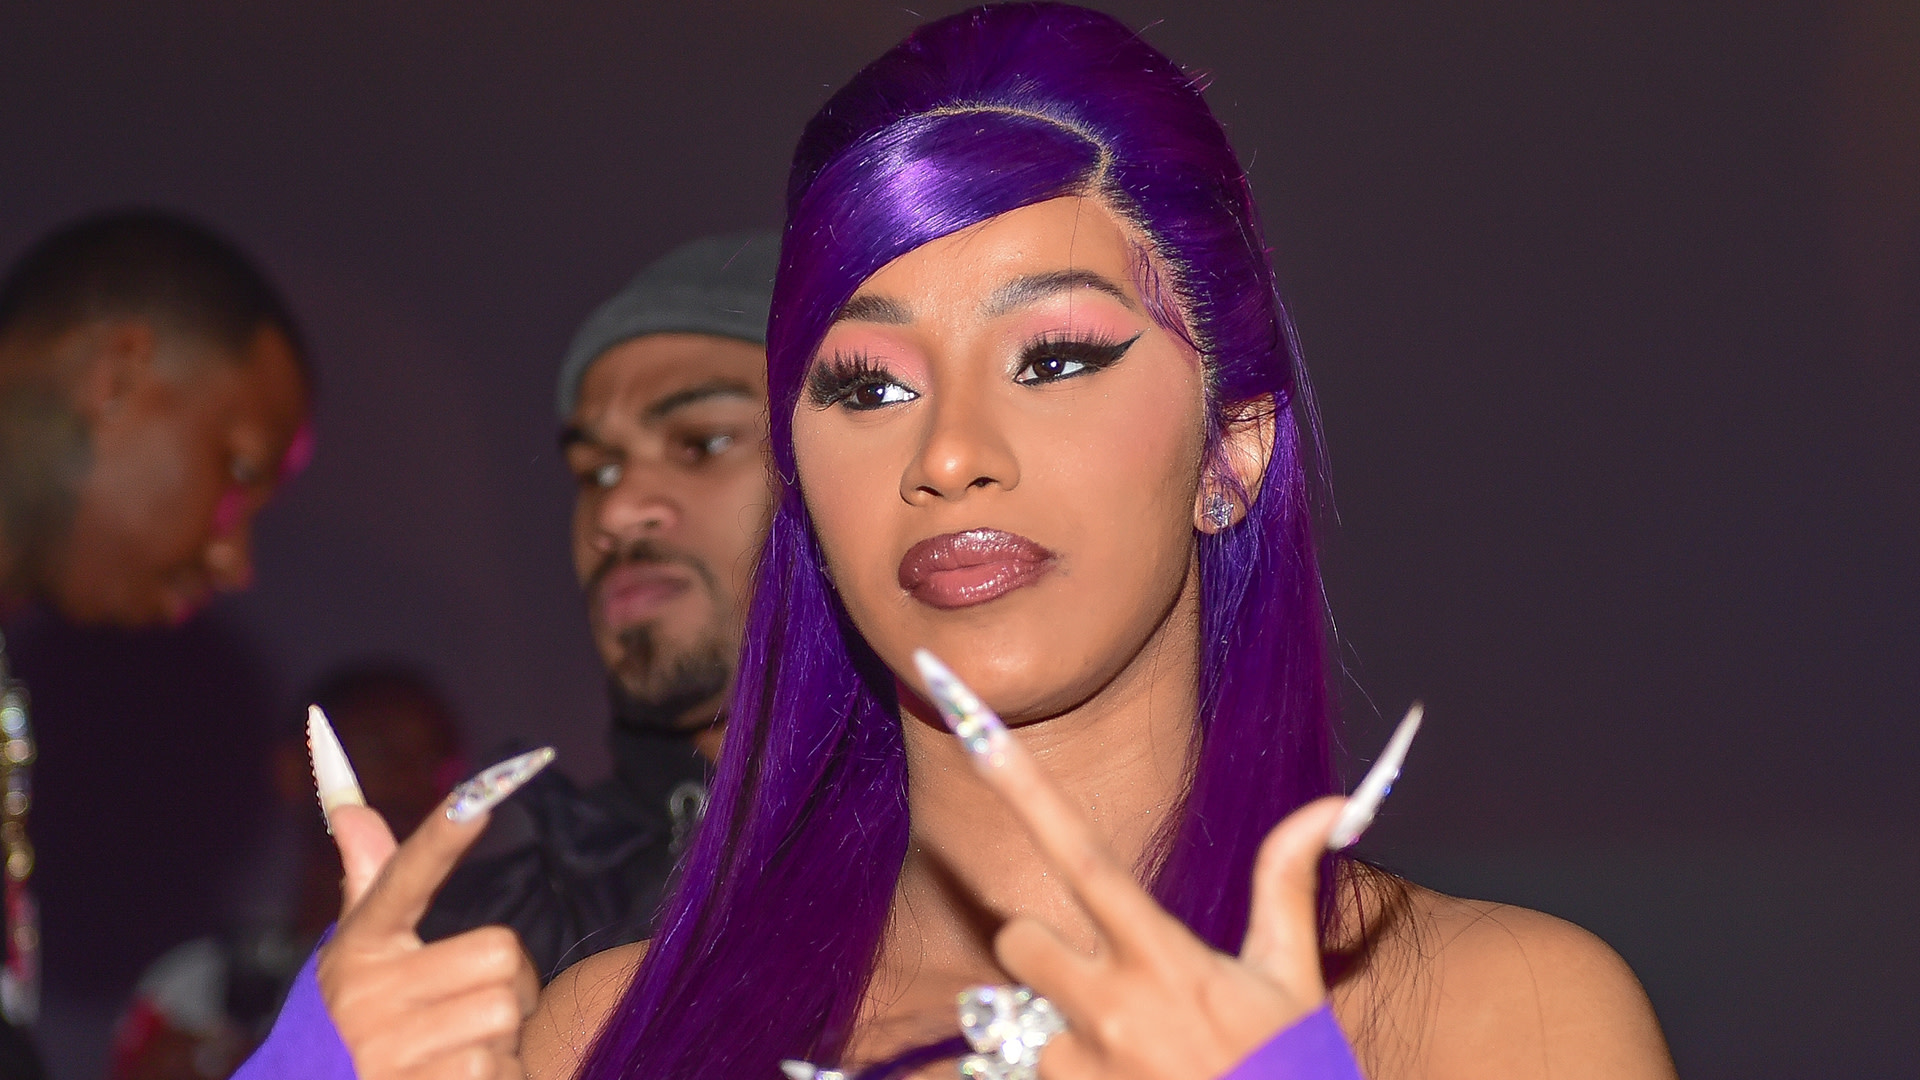 Cardi B Wants to Start a GoFundMe Campaign for 'Tiger King' Star Joe Exotic